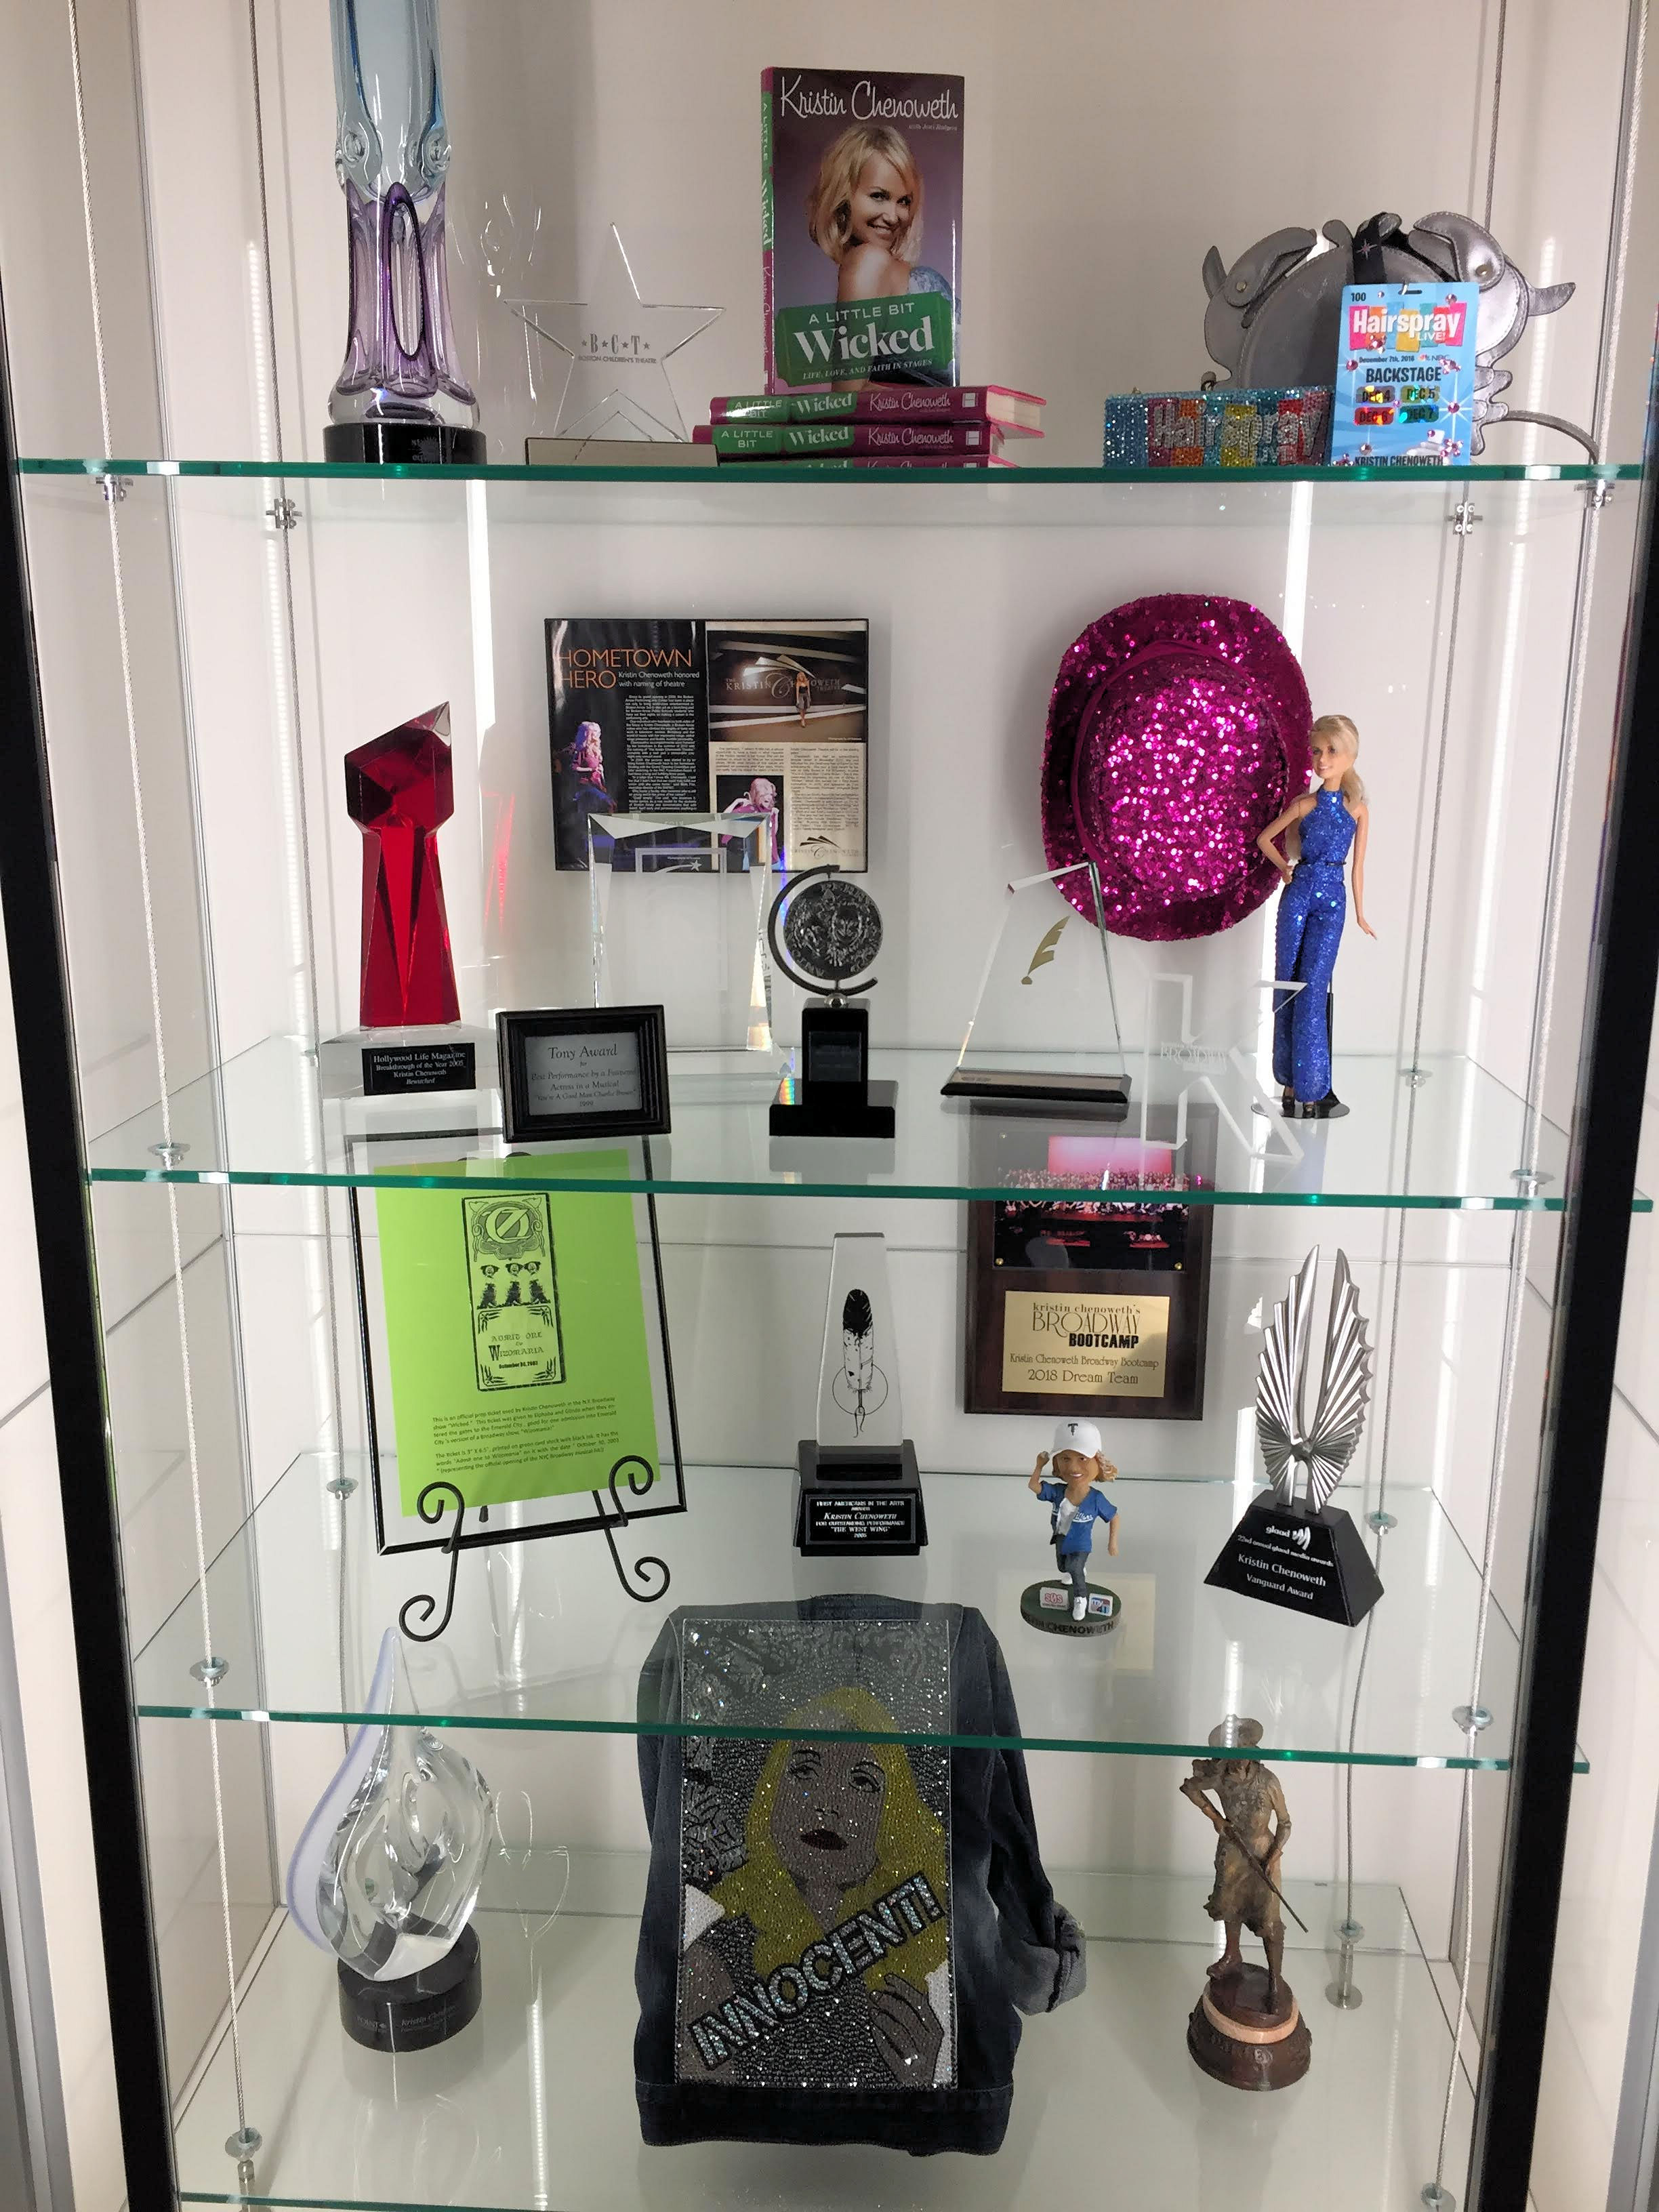 a display case with trophies belonging to Kristen Chenoweth